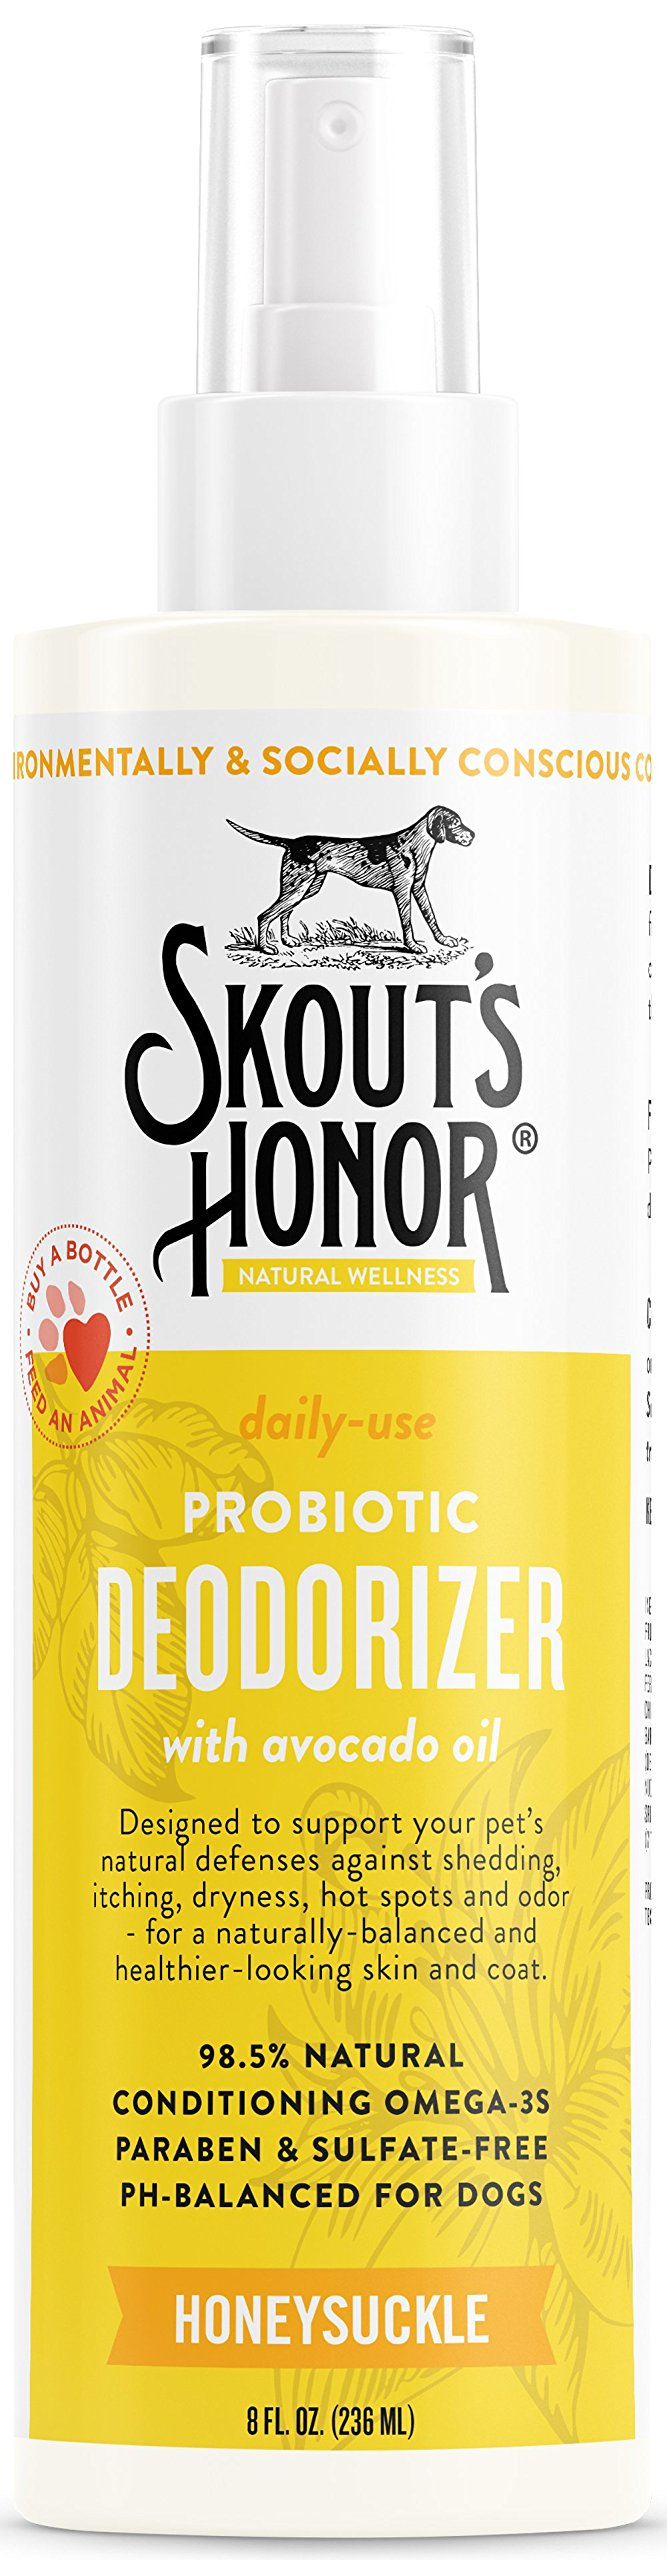 SKOUT'S HONOR Pet Conditioner Probiotic Deodorizer Honeysuckle - 8 fl. oz. - Hydrates and Deodorizes Fur, Supports Pet's Natural Defenses, PH-Balanced and Sulfate Free - Avocado Oil